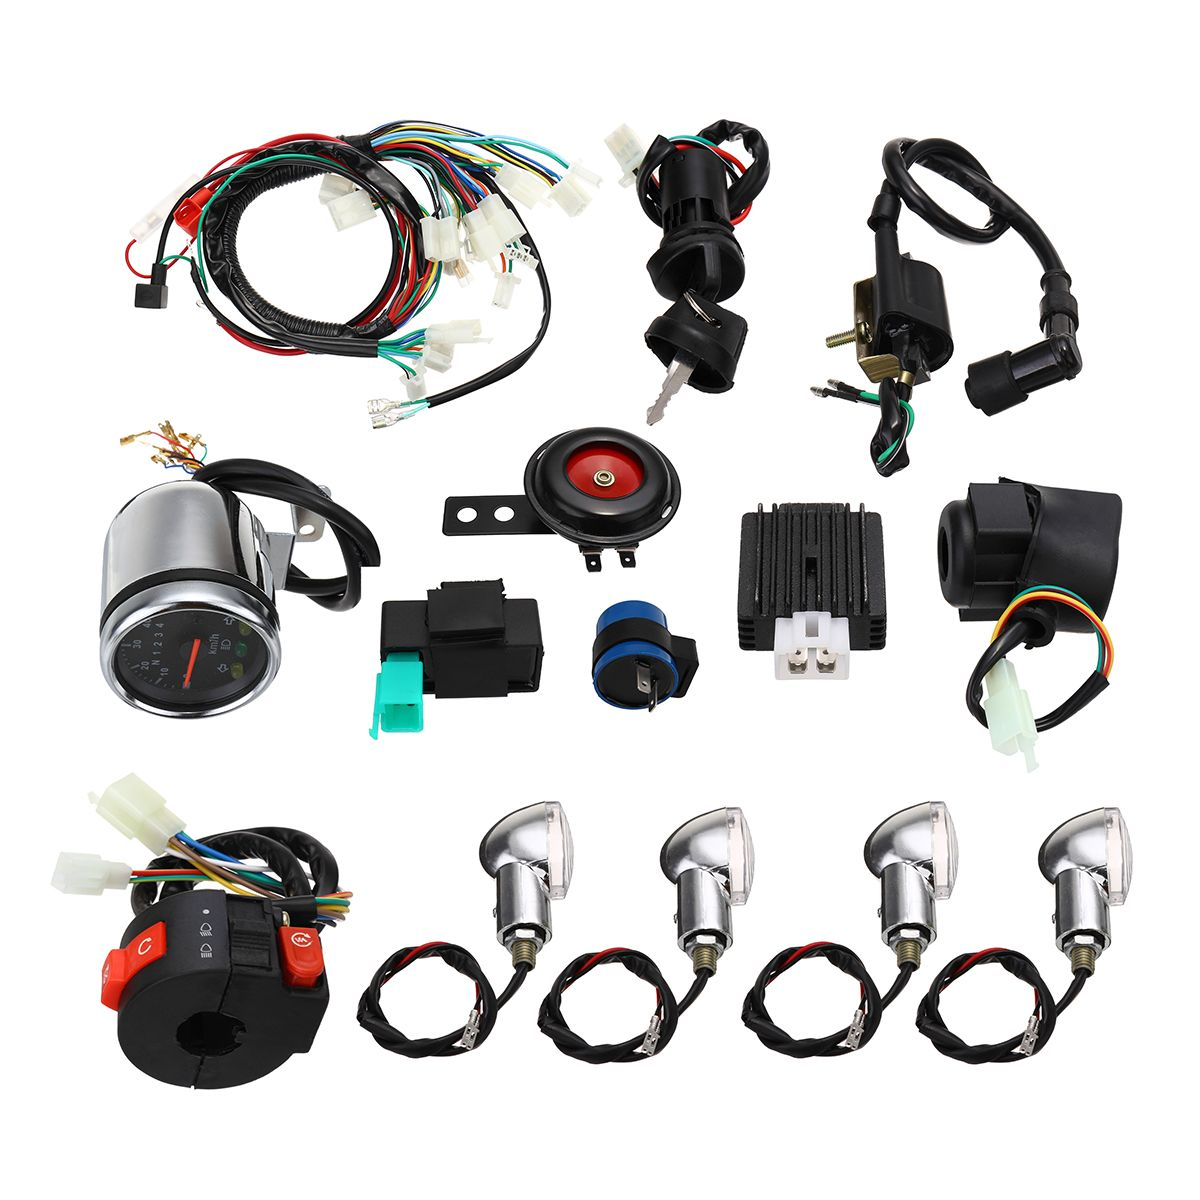 hight resolution of  us 53 99 full electric start engine wiring harness loom for cdi 110cc 125cc quad bike atv full electric start engine wiring harness loom cc cc